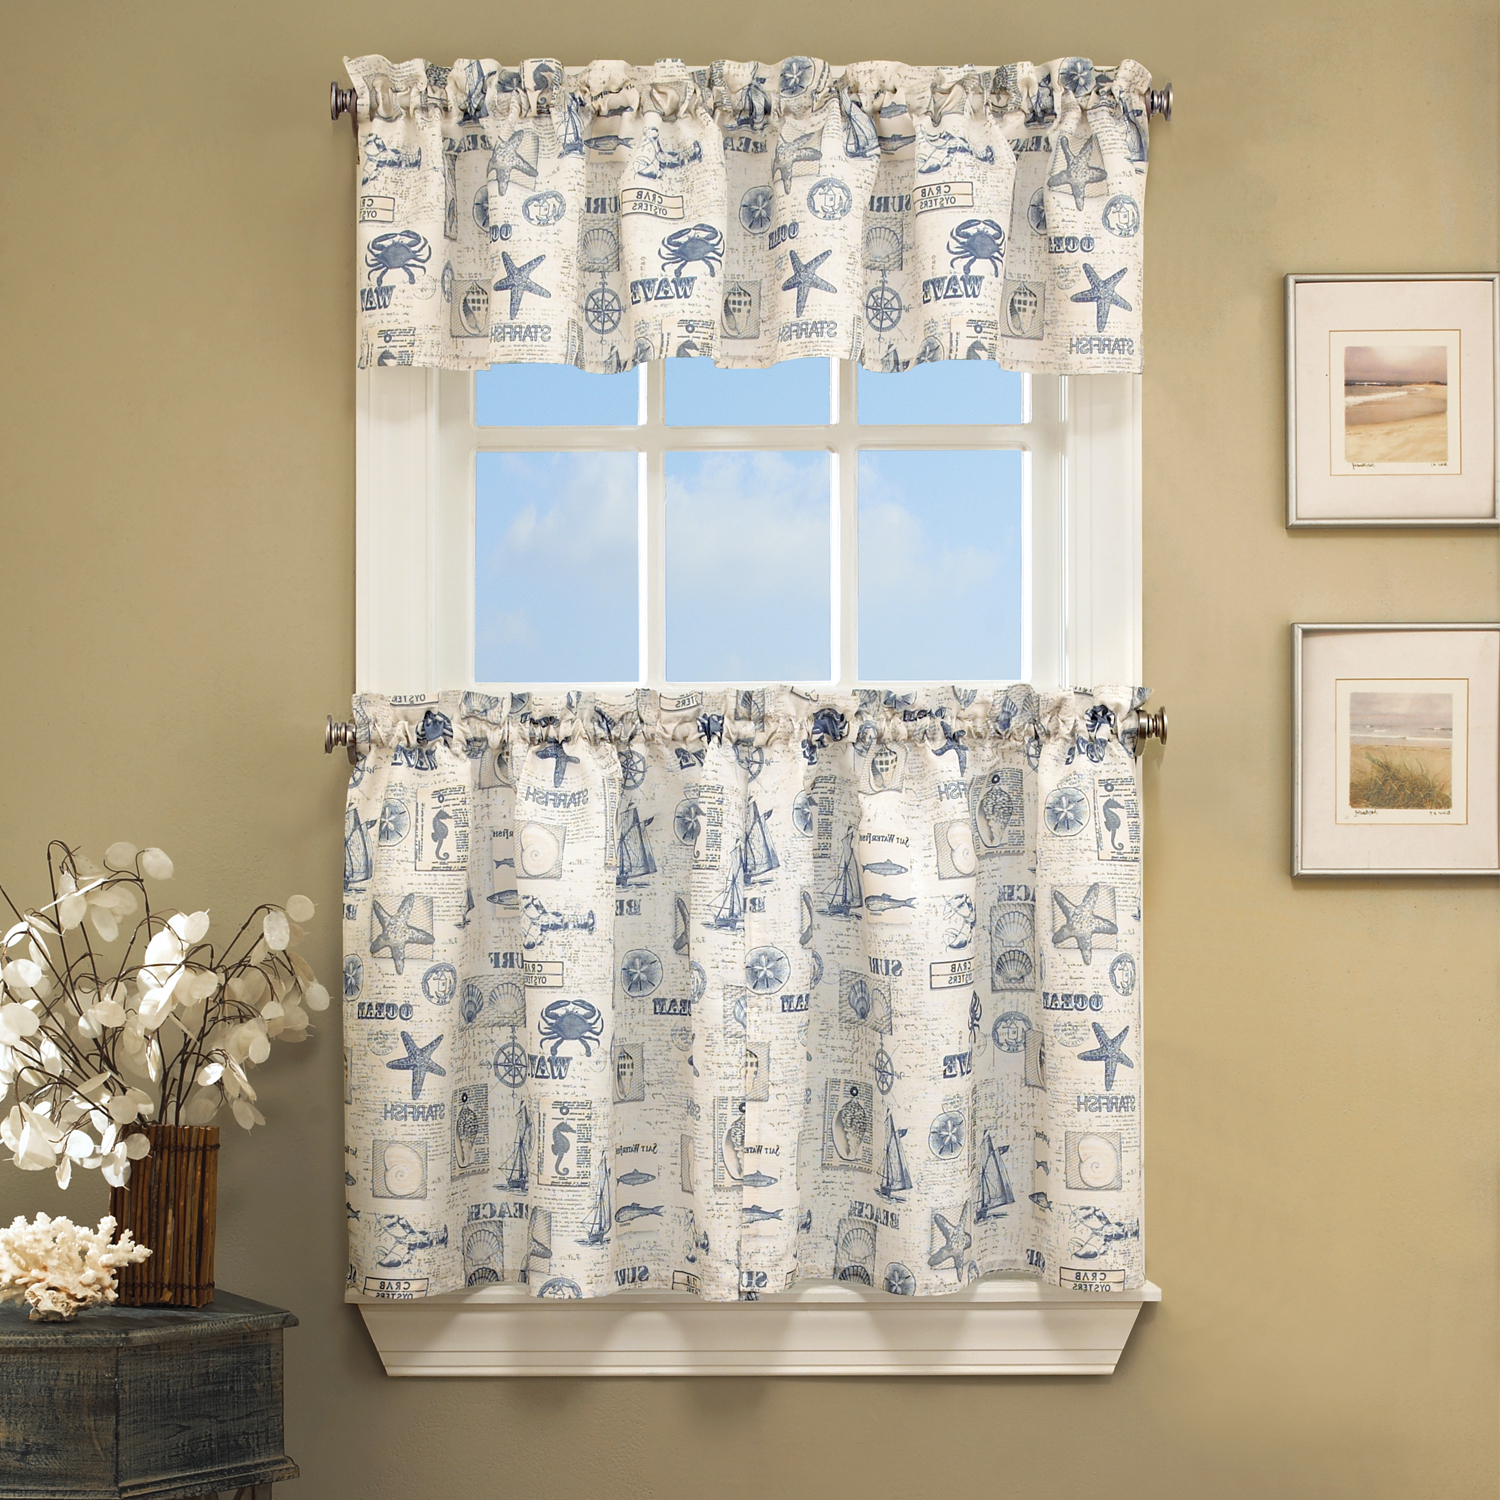 Most Recently Released Tranquility Curtain Tier Pairs With Regard To Details Aboutthe Sea Printed Ocean Beach Images Kitchen Curtains Tiers  Or Valance (View 9 of 20)